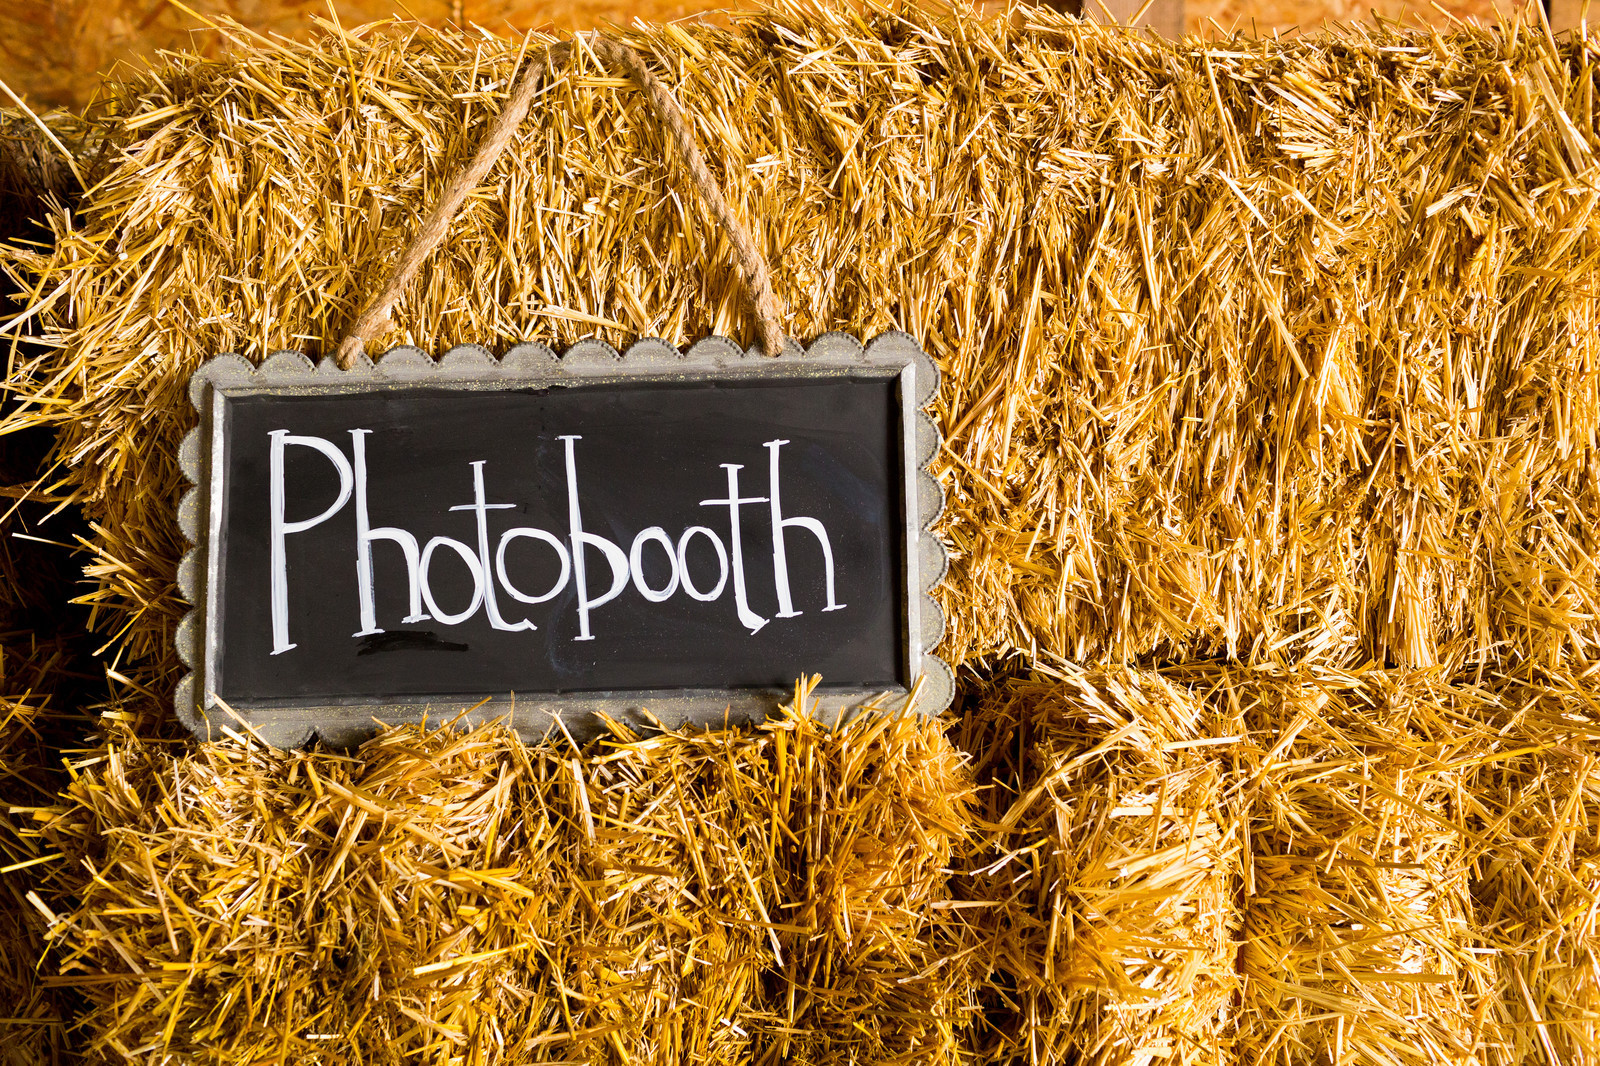 Photobooth-Sign-on-Hay-copy